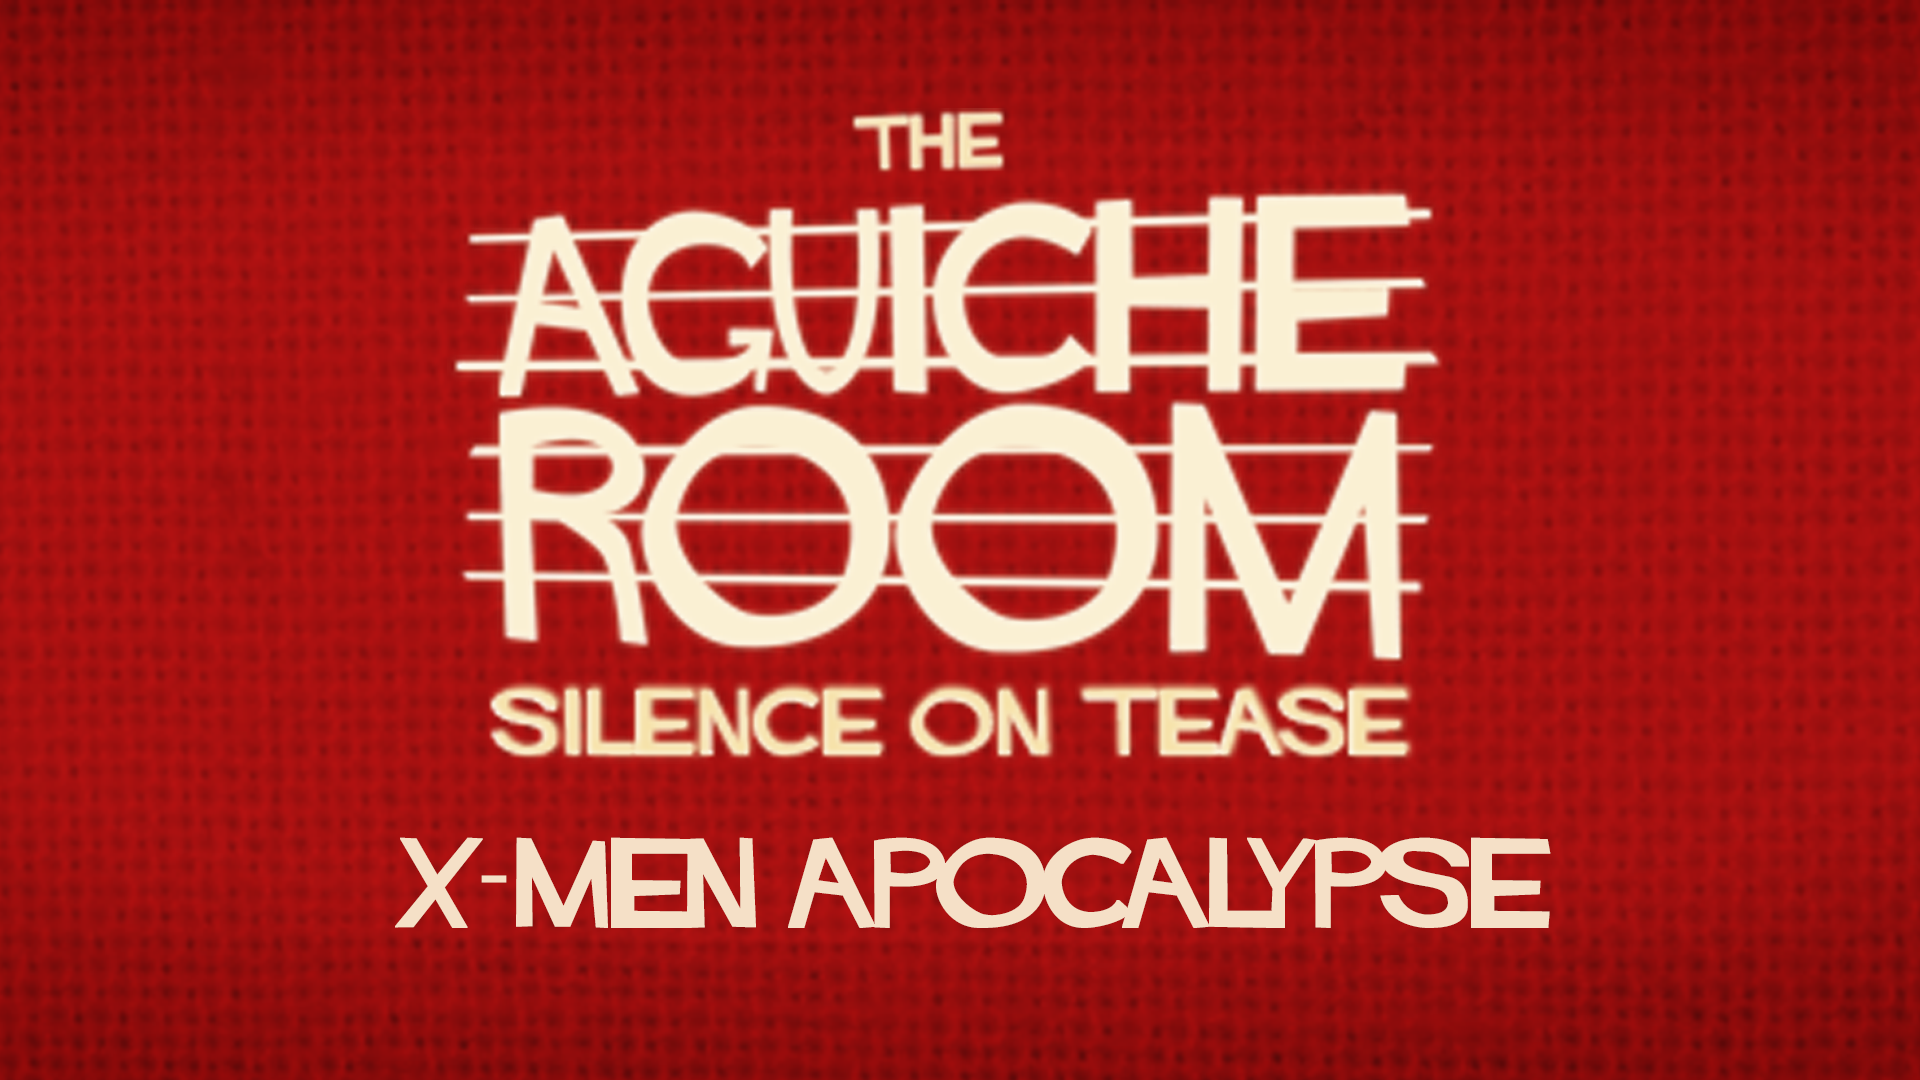 The Aguiche Room : X-Men Apocalypse